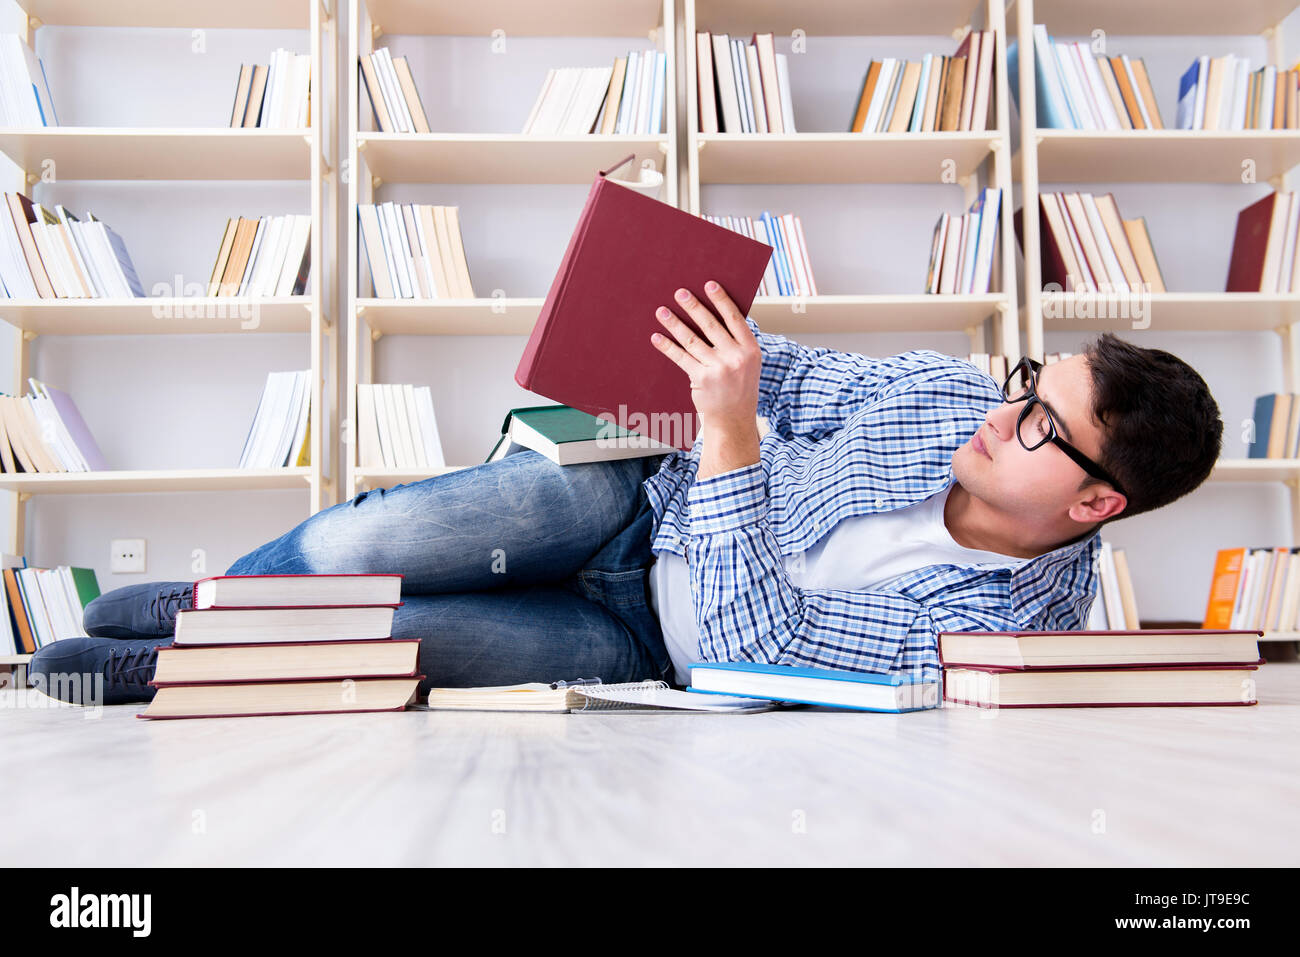 Overstudying High Resolution Stock Photography And Images Alamy